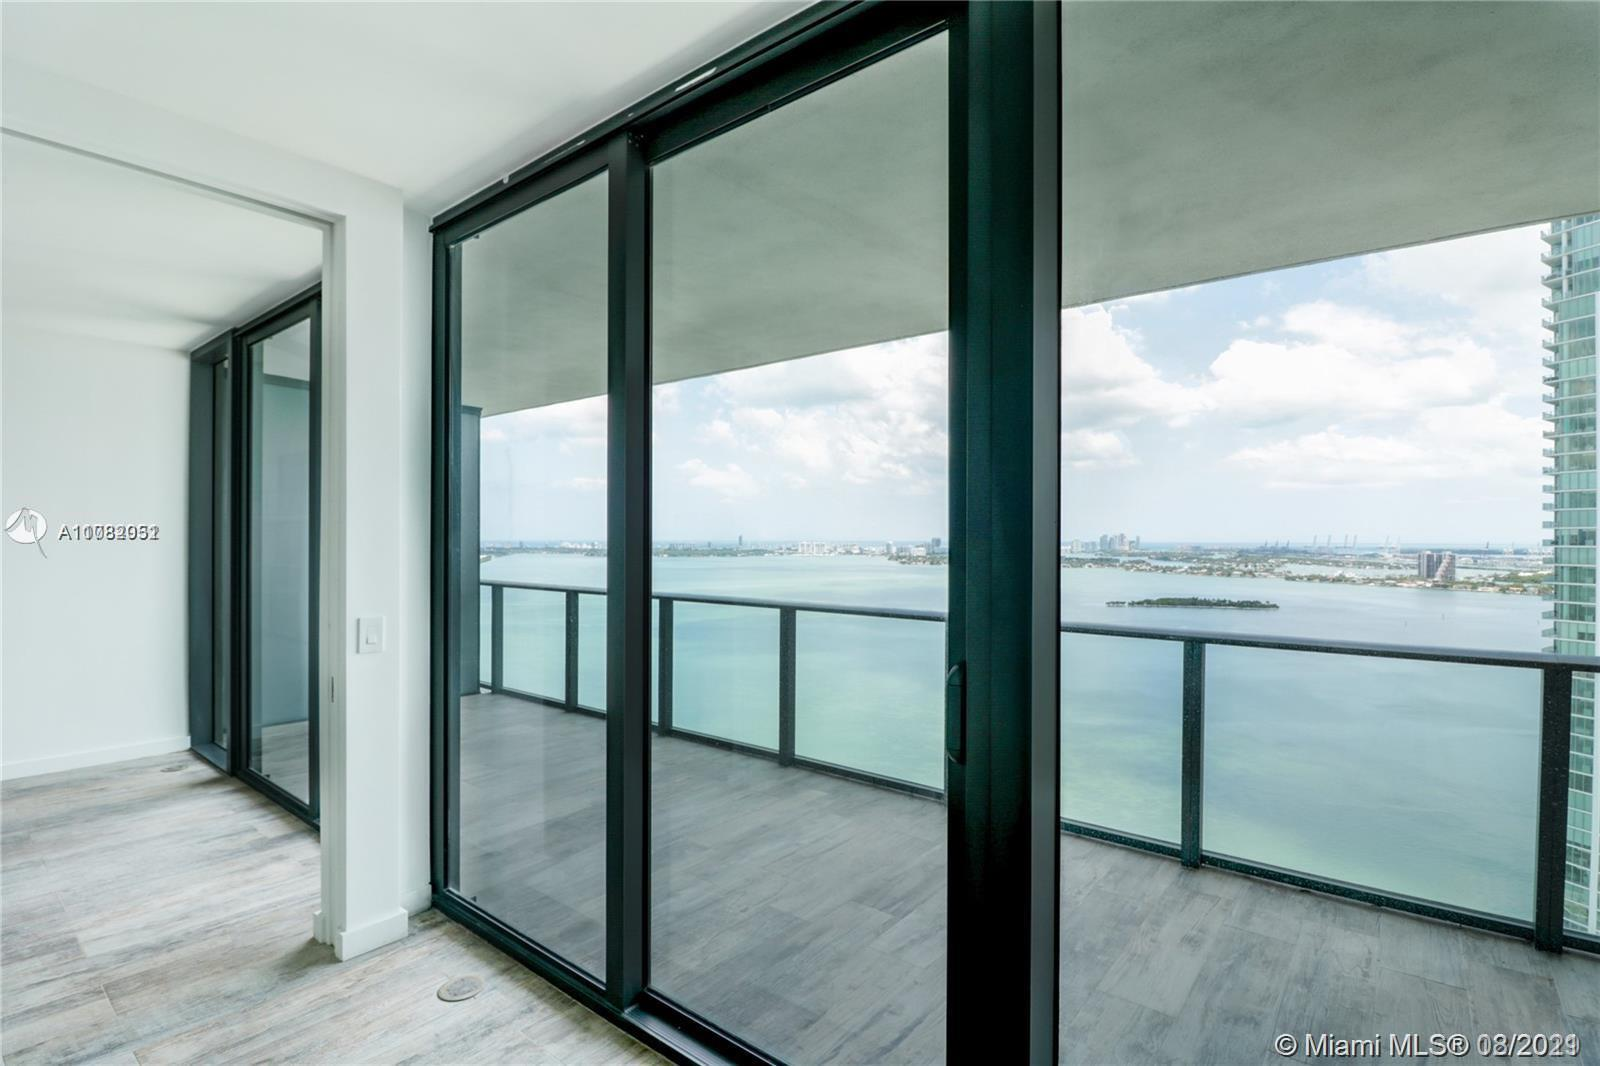 PARAISO BAY - NEW 1 BEDROOM 2 BATH PLUS DEN APARTMENT WITH DIRECT BREATHTAKING WATER VIEWS! WOOD LOO